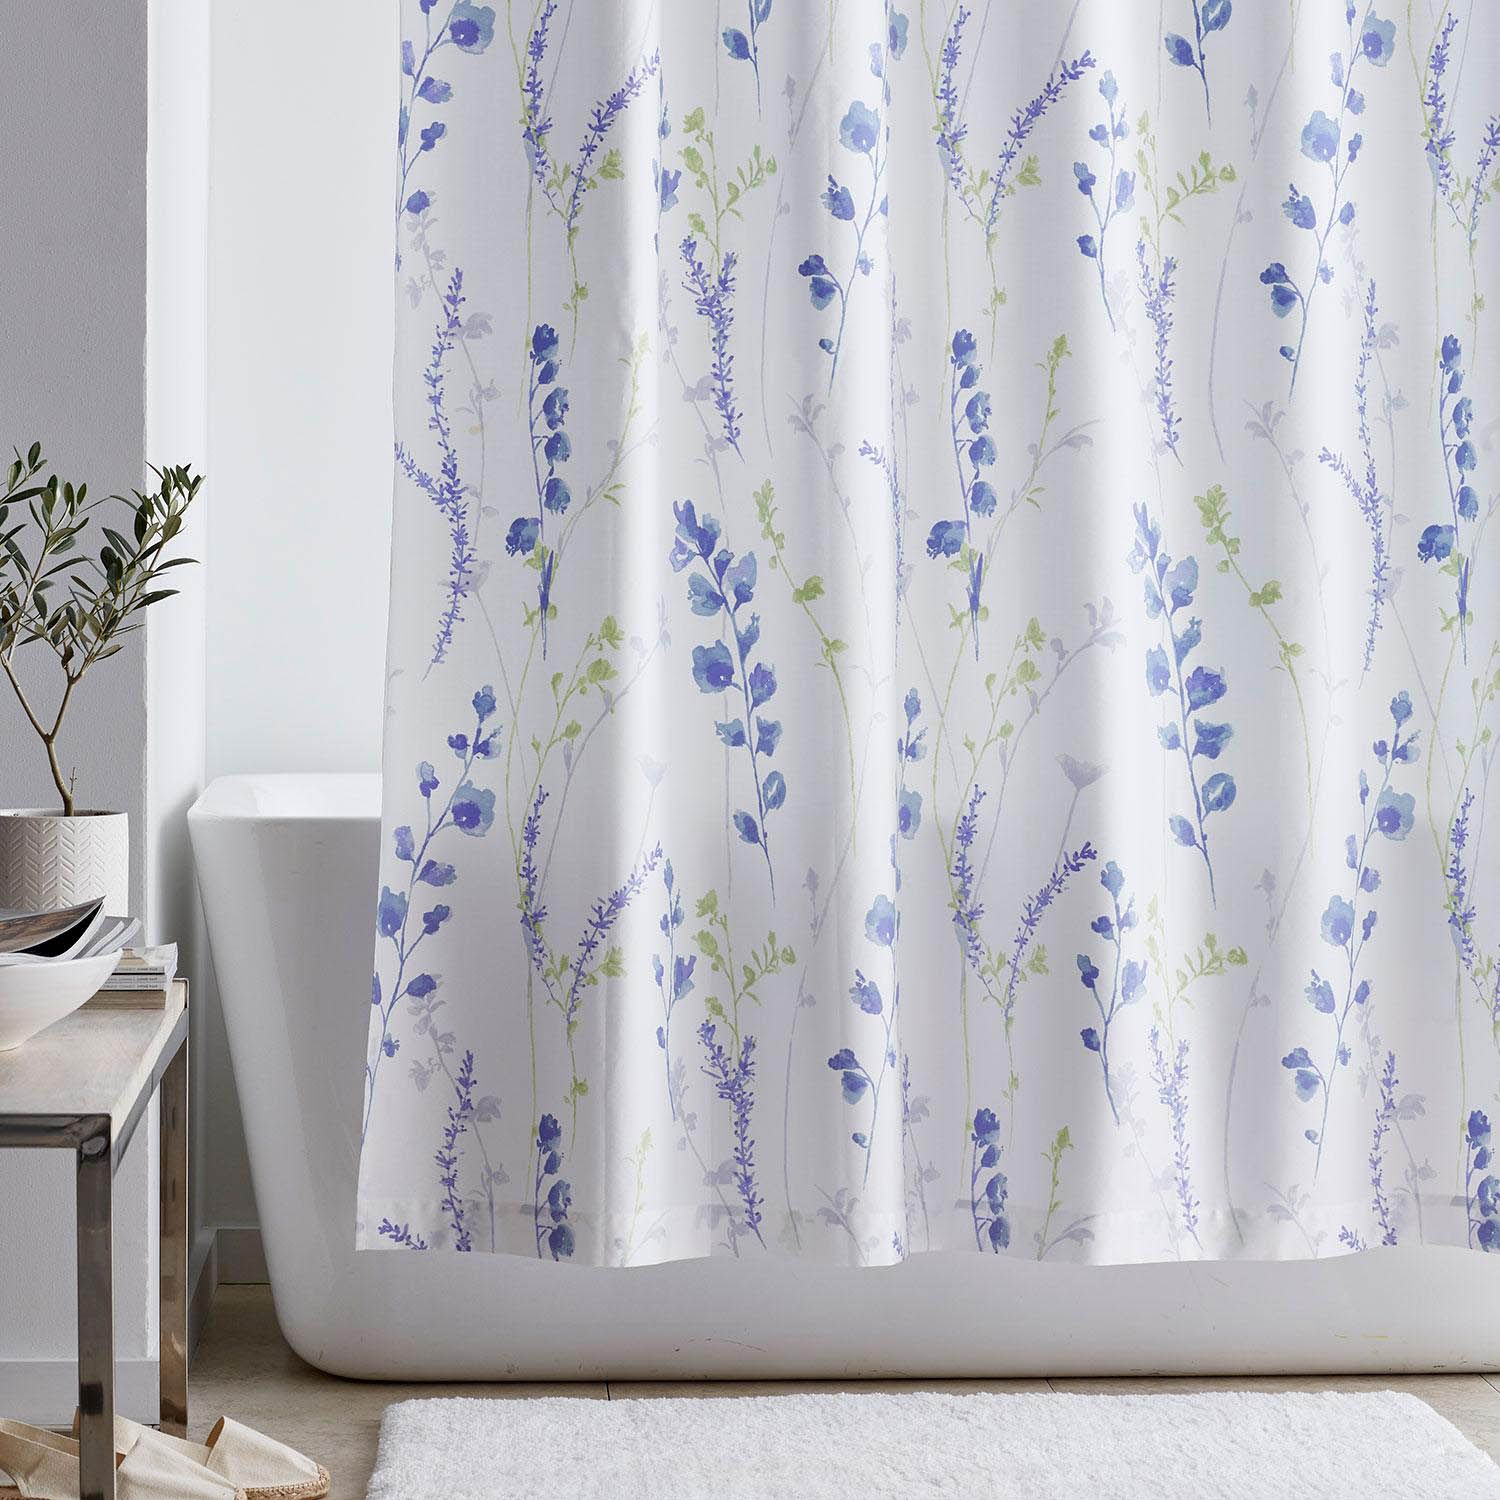 Downpour Curtain Ideas Make Your Bathroom Look More Spacious